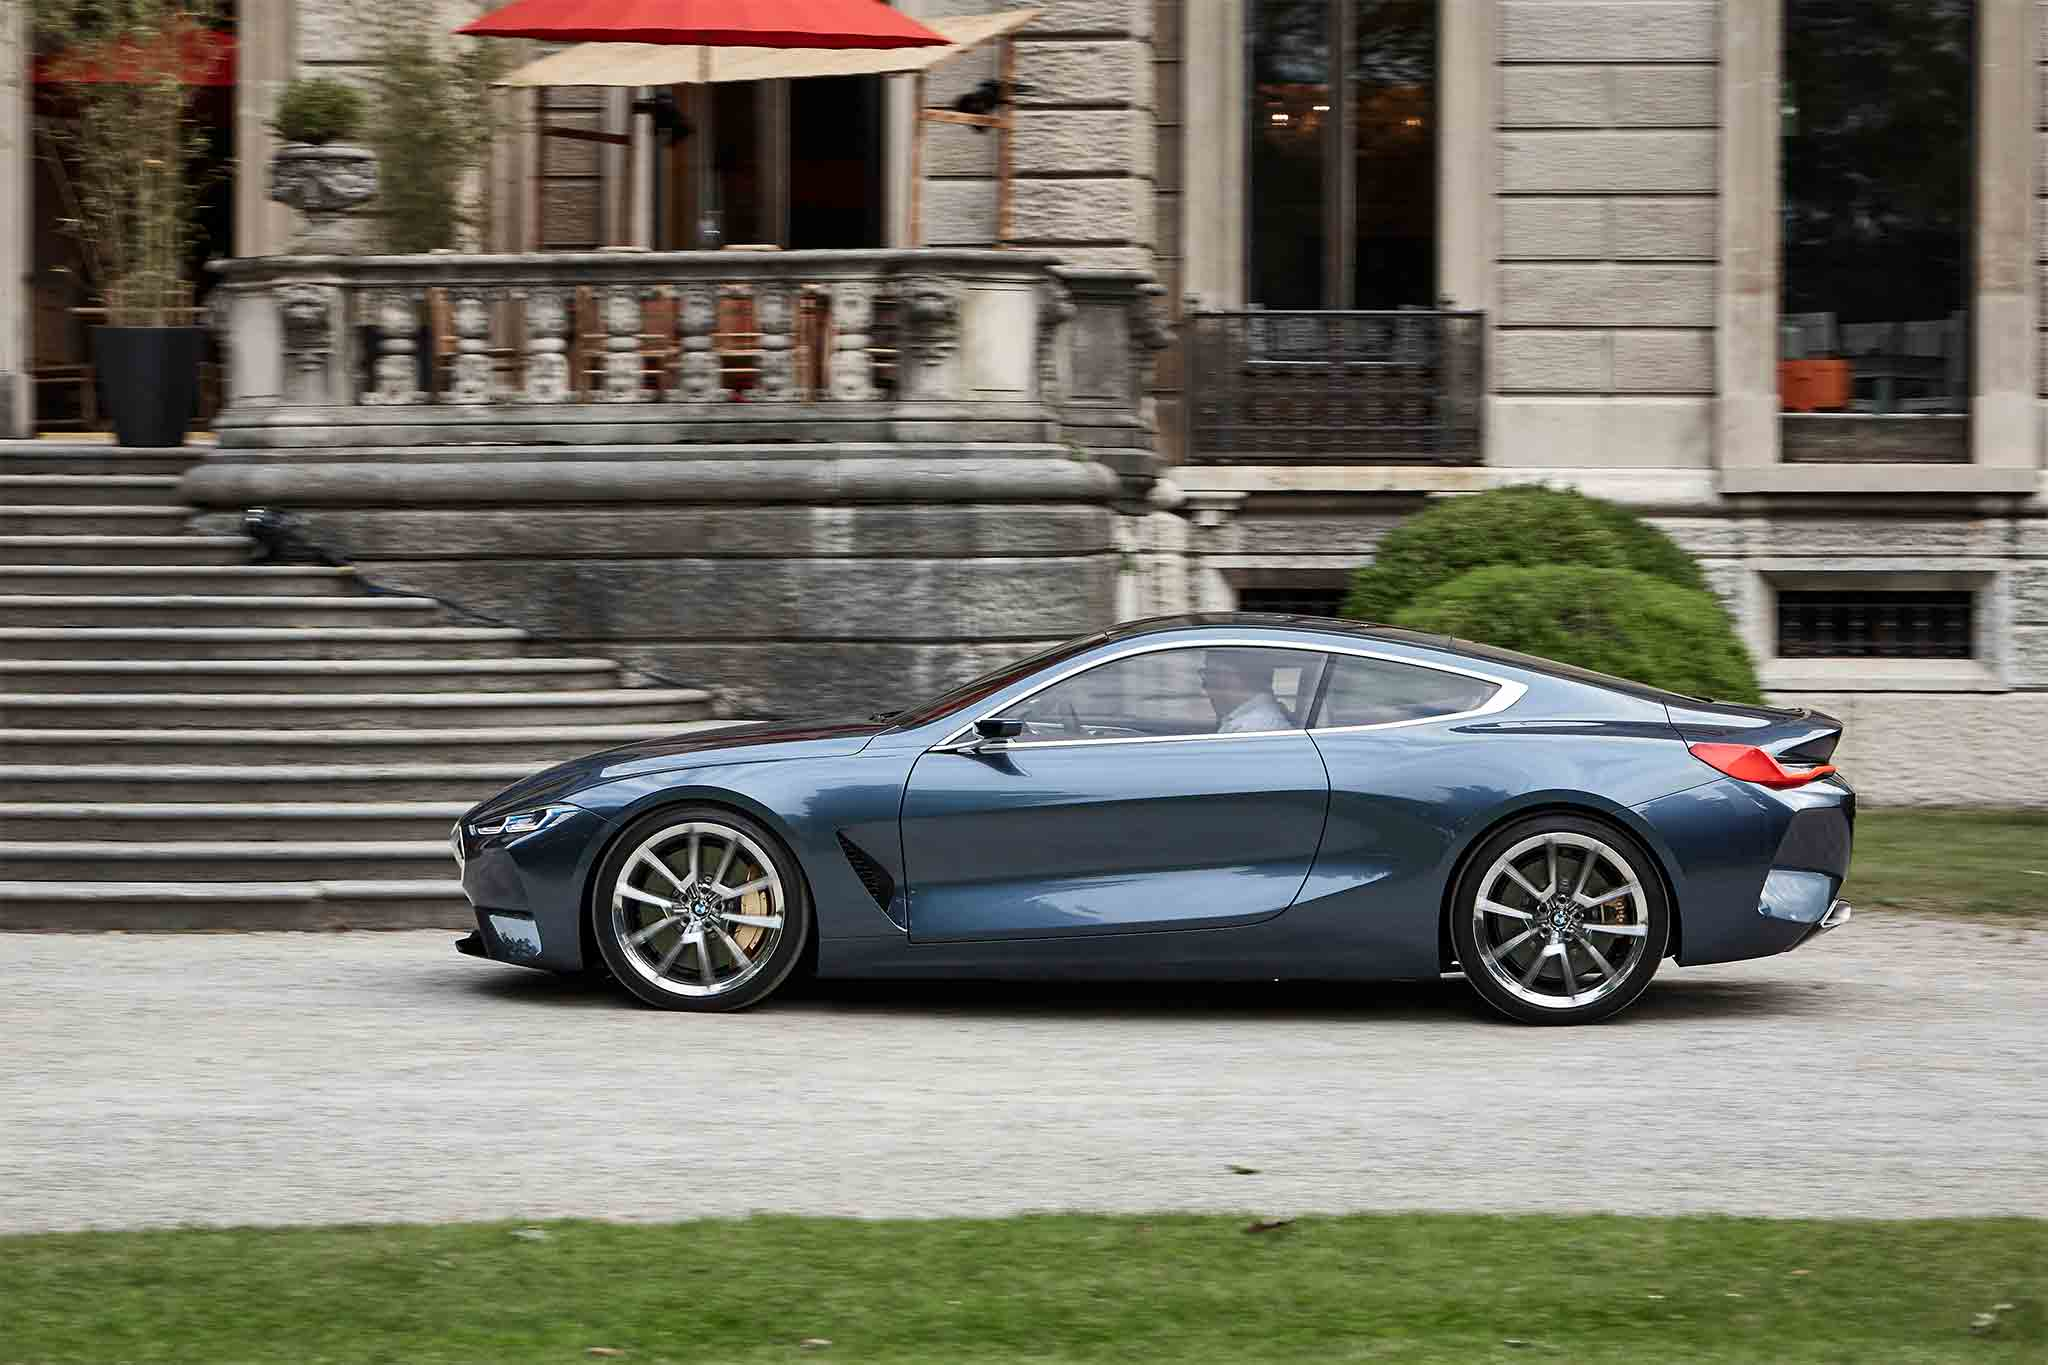 2018 bmw 850i. fine bmw u201cthe front end is defined by an aggressive sharknose grille which makes a  real statement it may look vulnerable but for optimum impact protection the  for 2018 bmw 850i